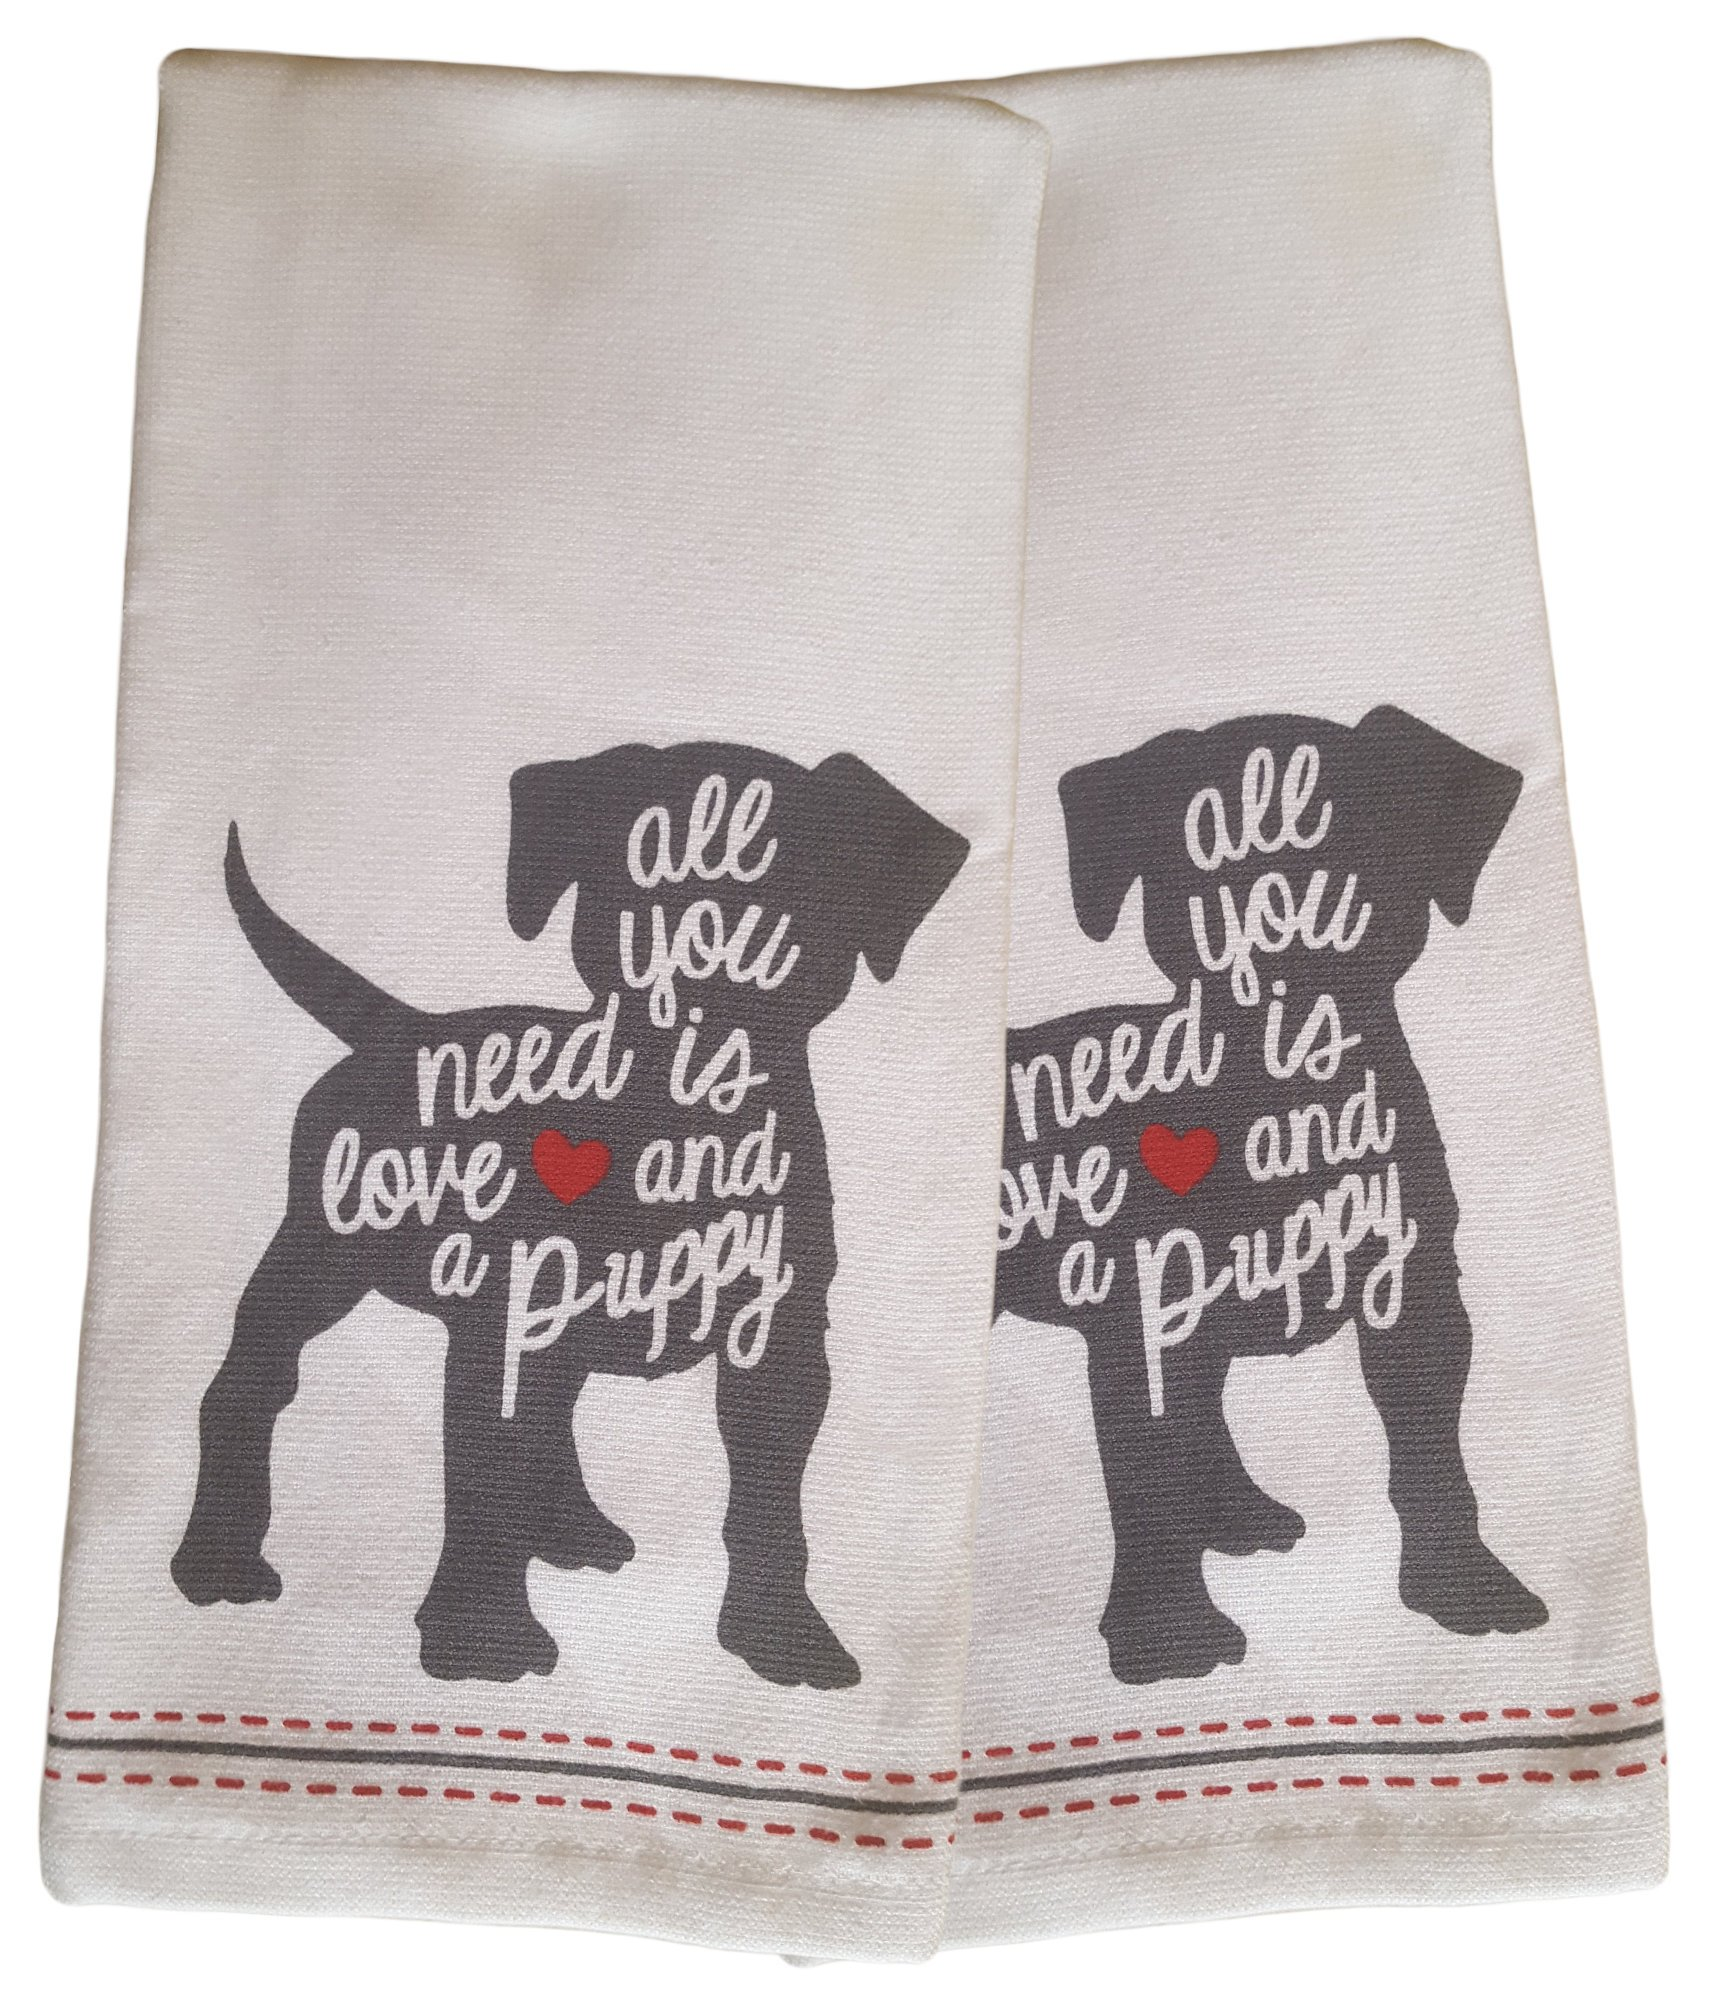 Set of 2 Ultra Absorbent 100% Cotton Kitchen Towels/Dish Cloths (All You Need is Love and a Puppy)